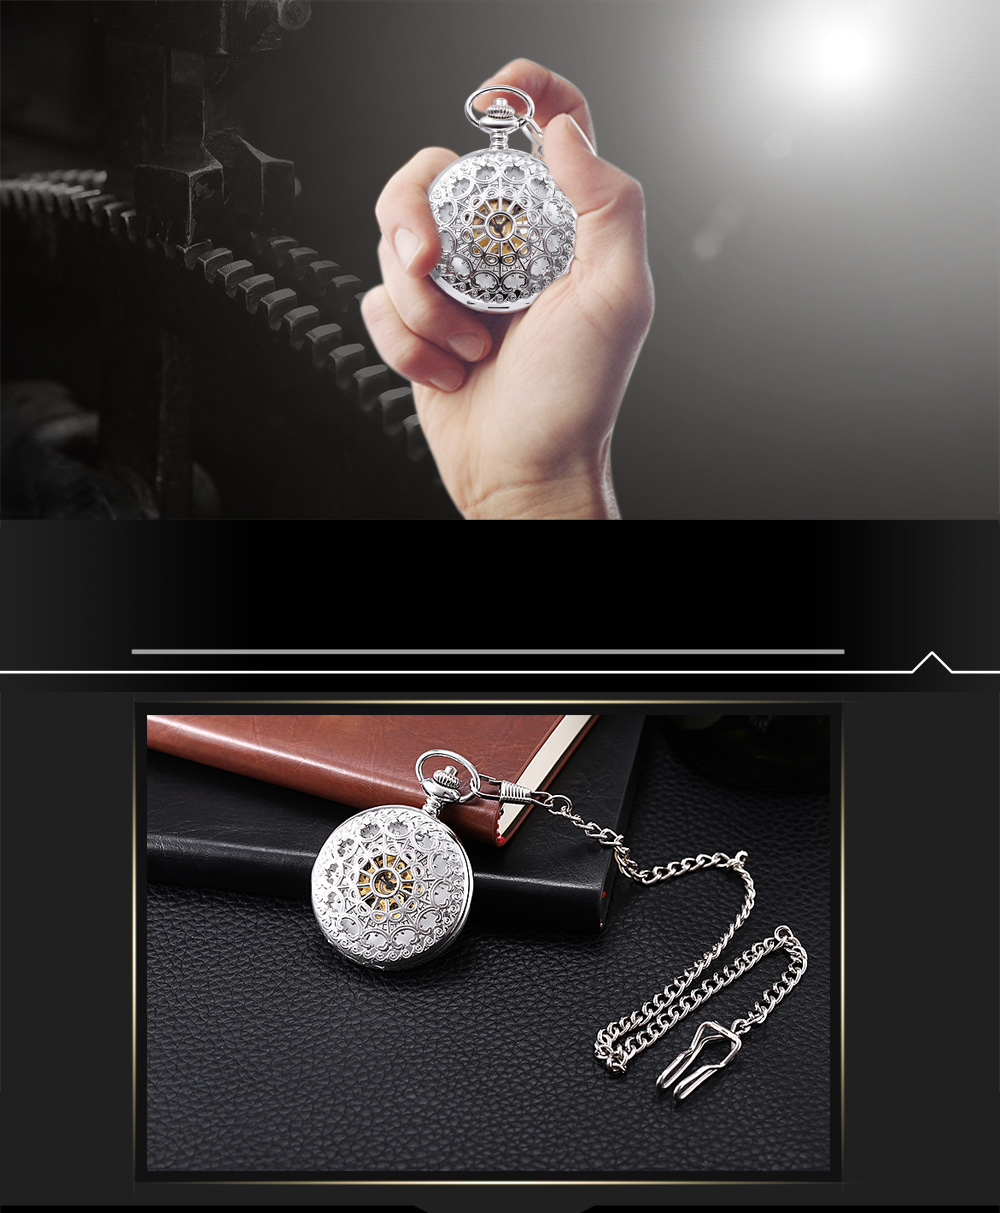 PC5 Vintage Mechanical Hand Wind Pocket Watch Hollow Pattern Front Cover Necklace Wristwatch